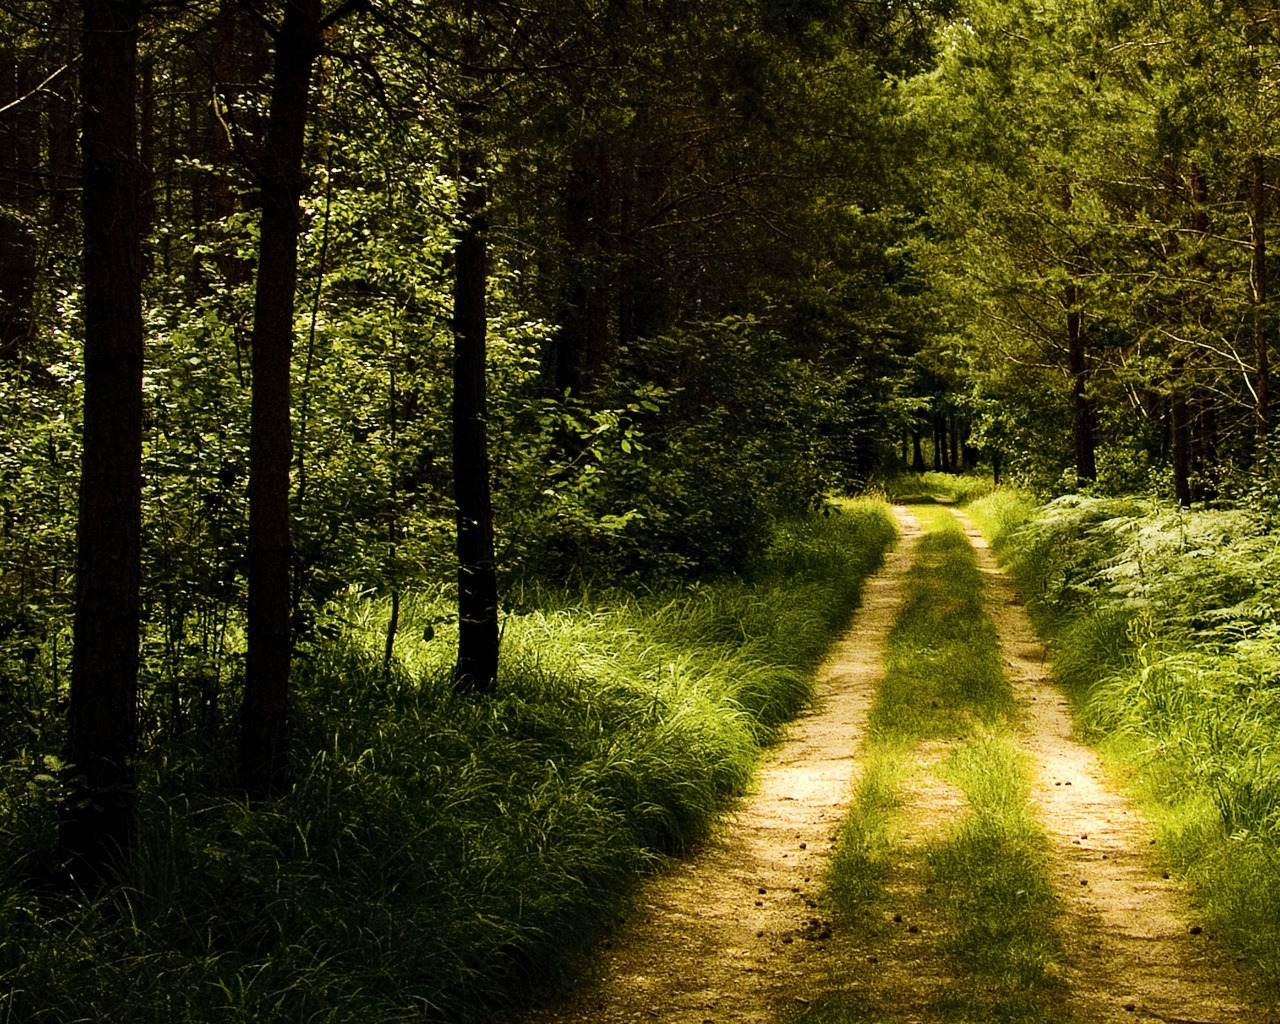 Germany Forest Road Wallpaper Landscape Nature Wallpapers ...